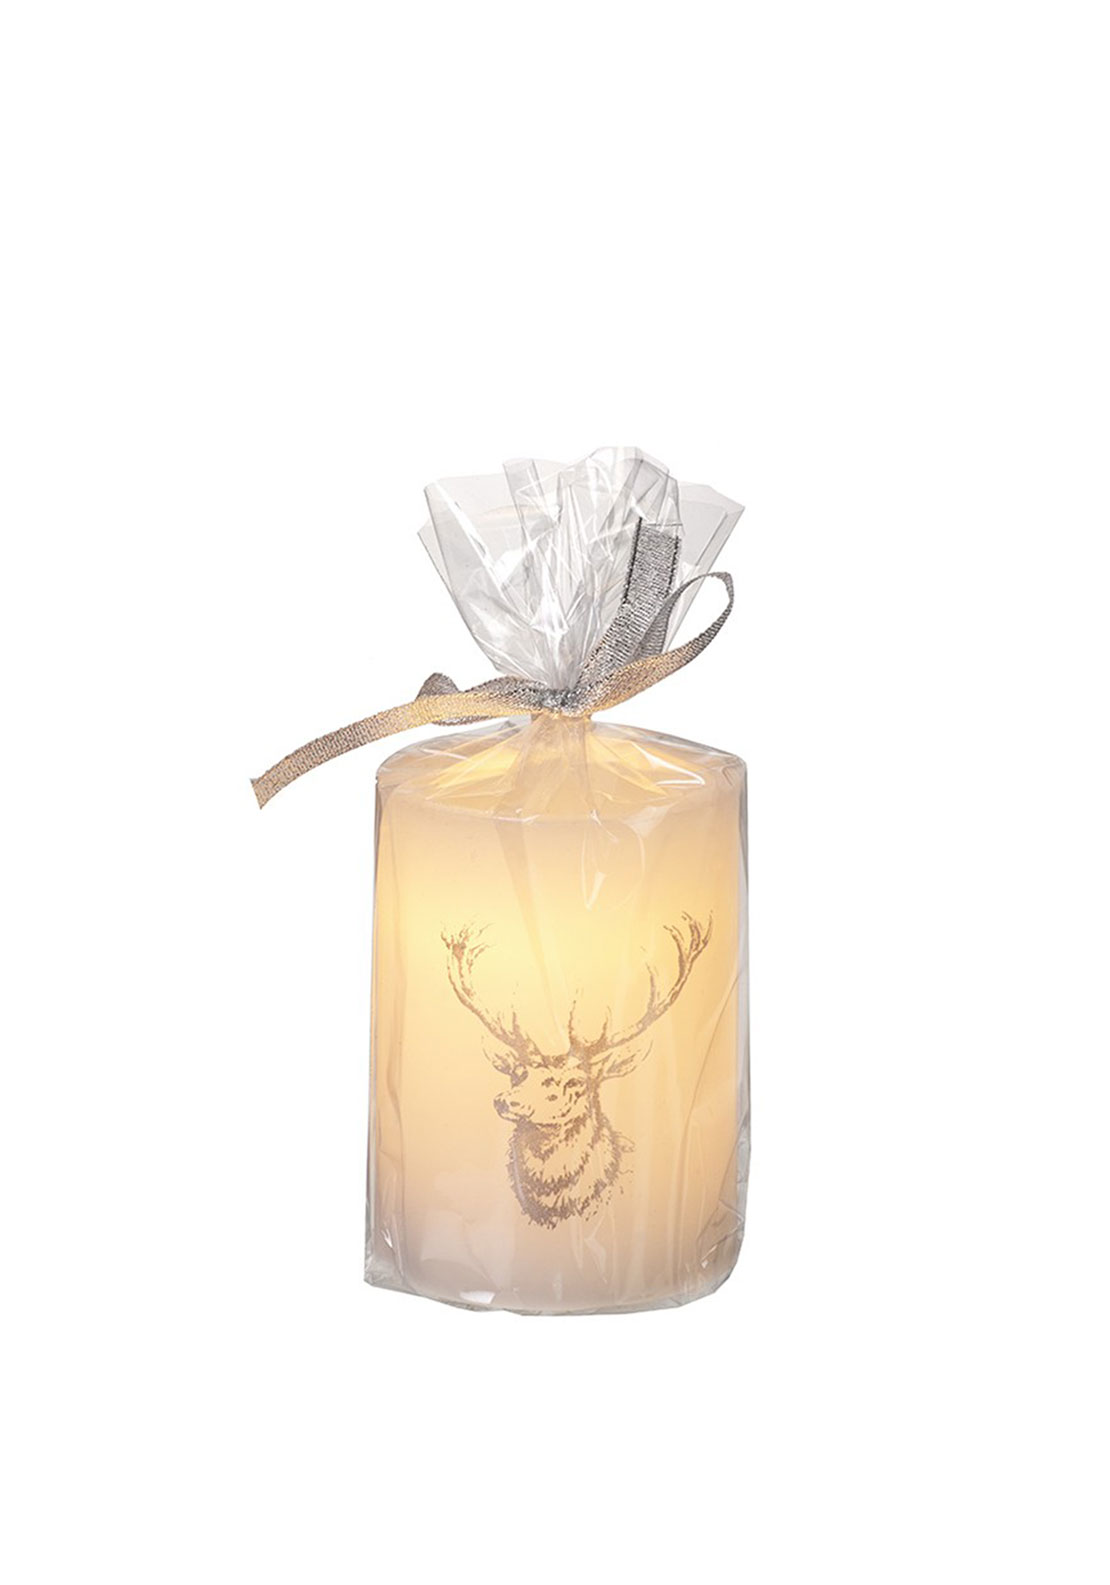 Heaven Sends Christmas LED Pillar Candle with Deer Design